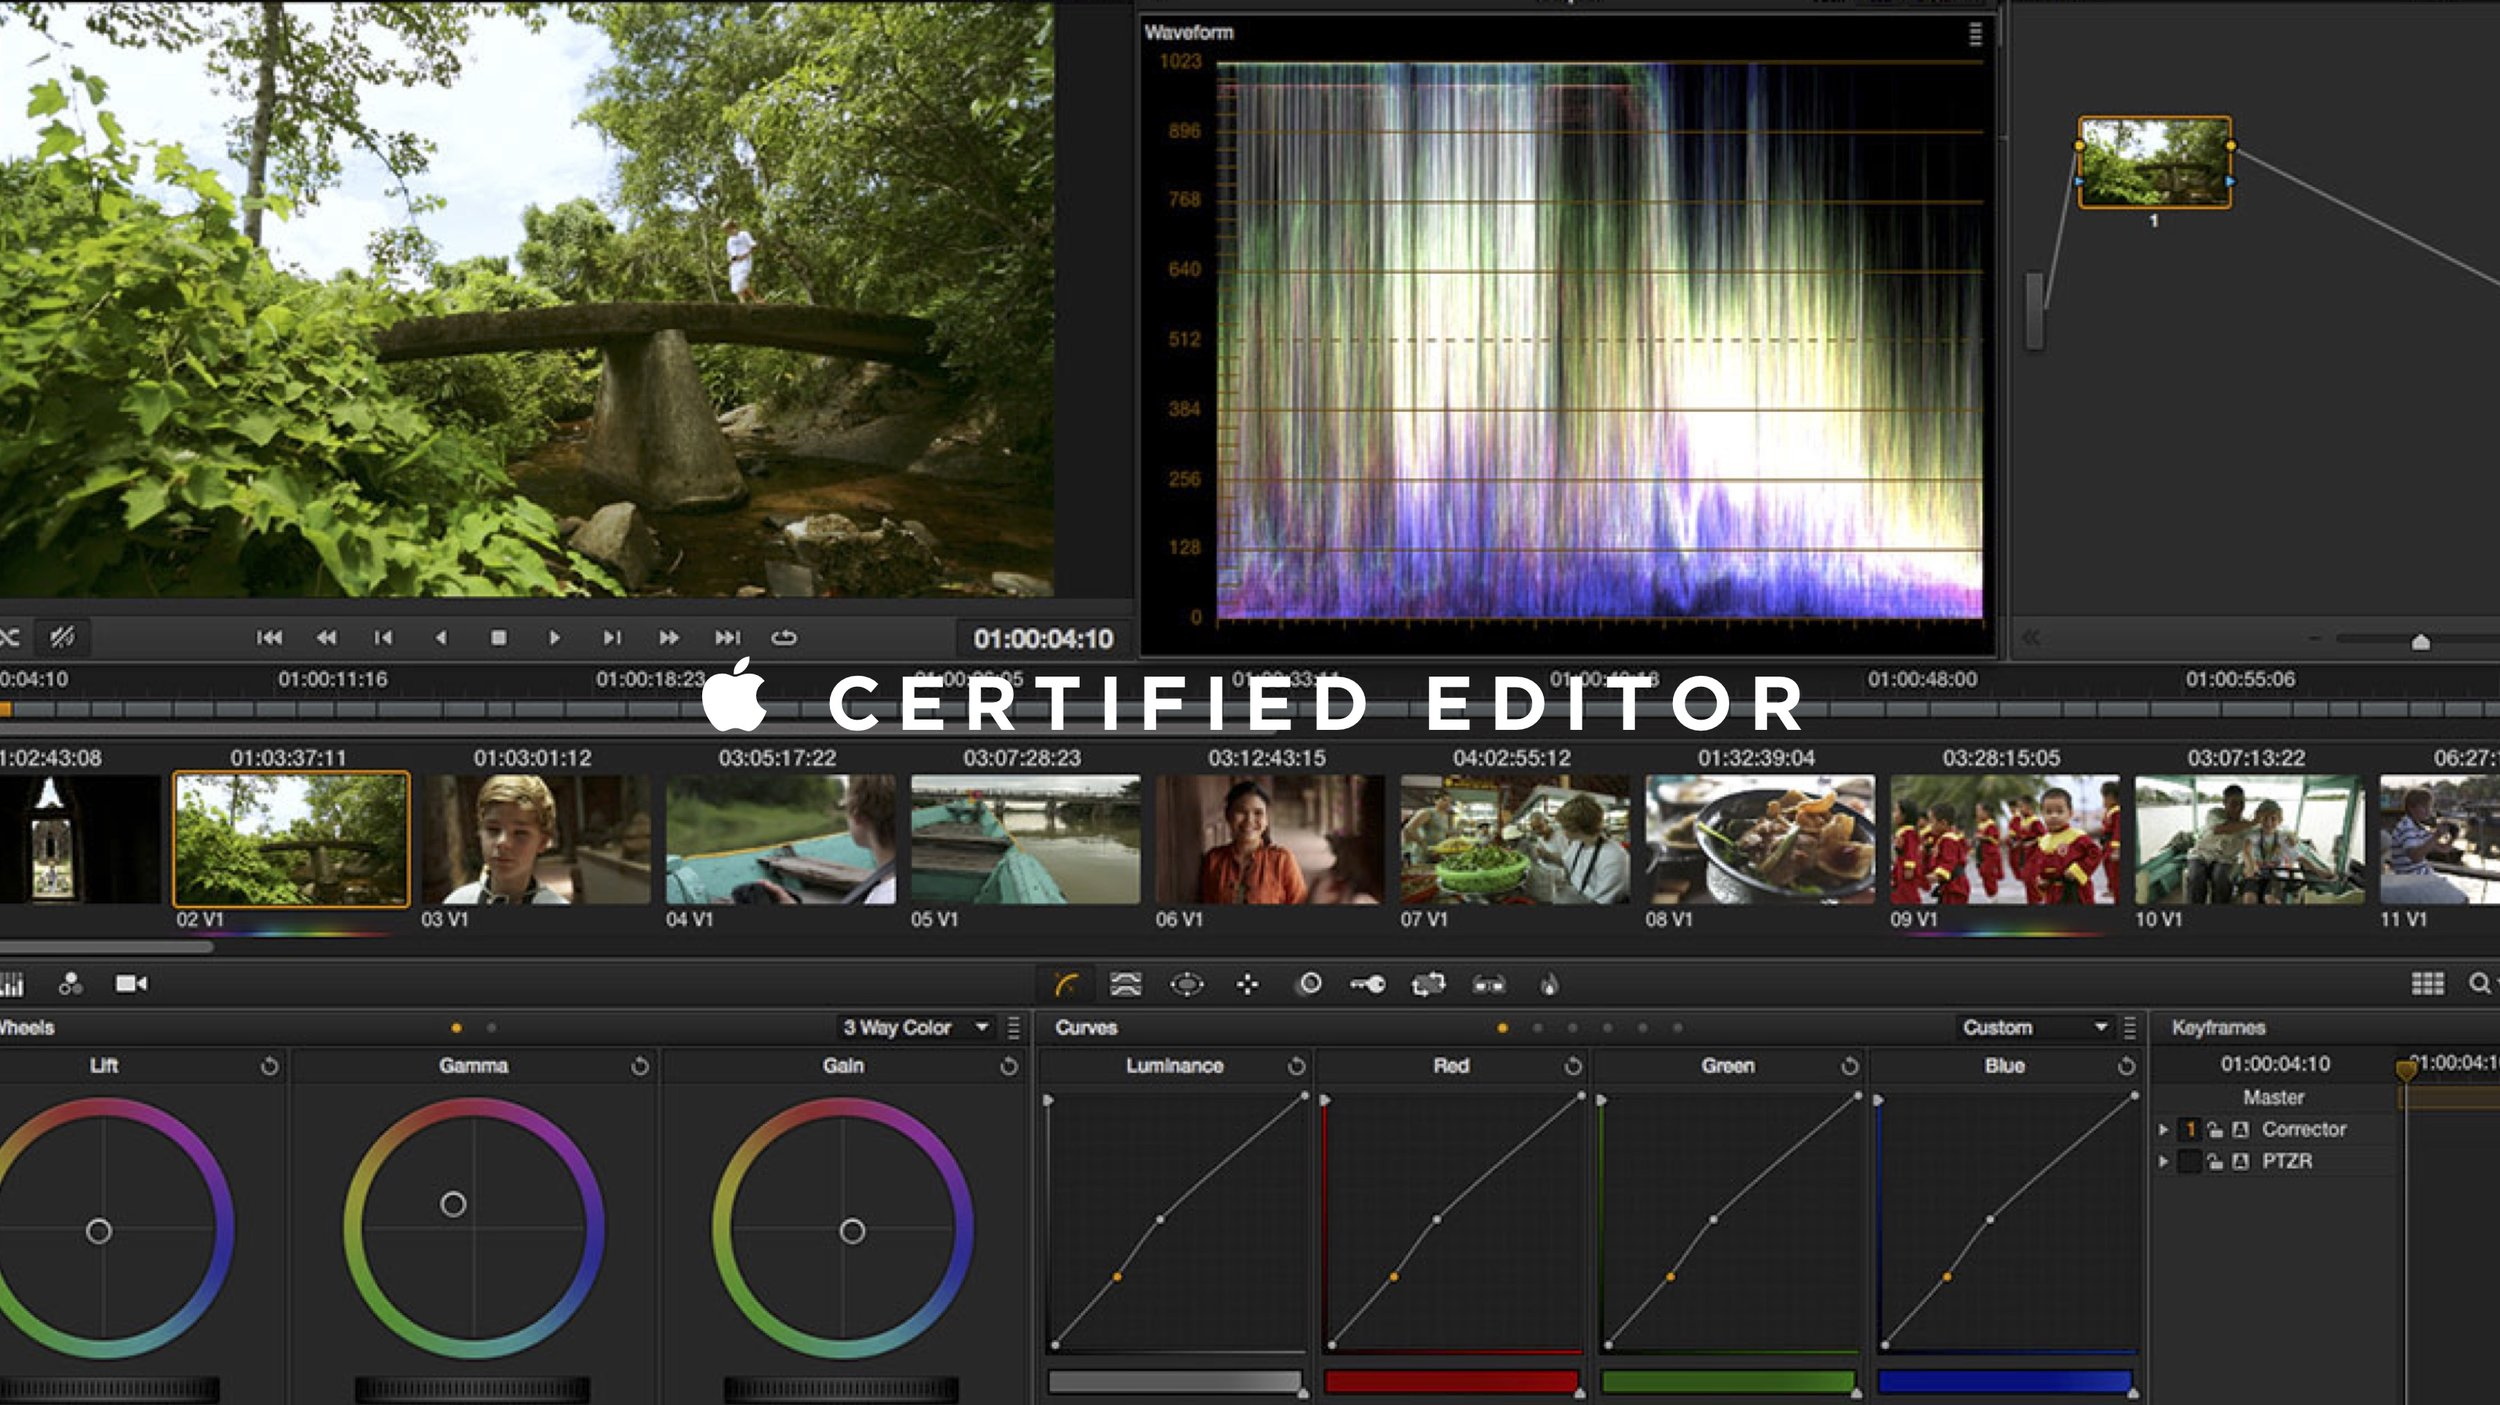 Essex Final Cut Pro Video Editor